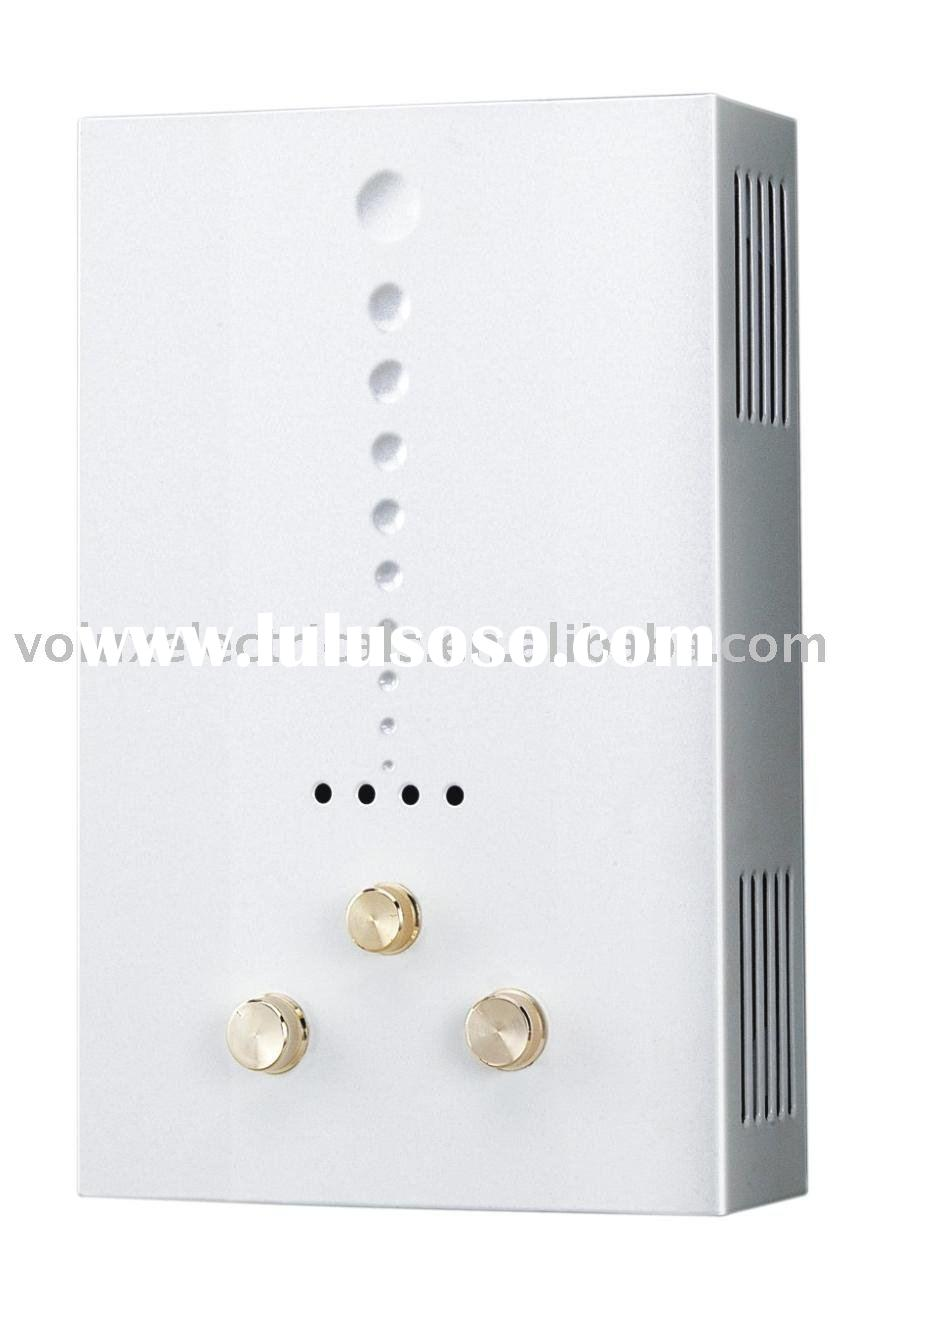 Natural gas tankless hot water heater